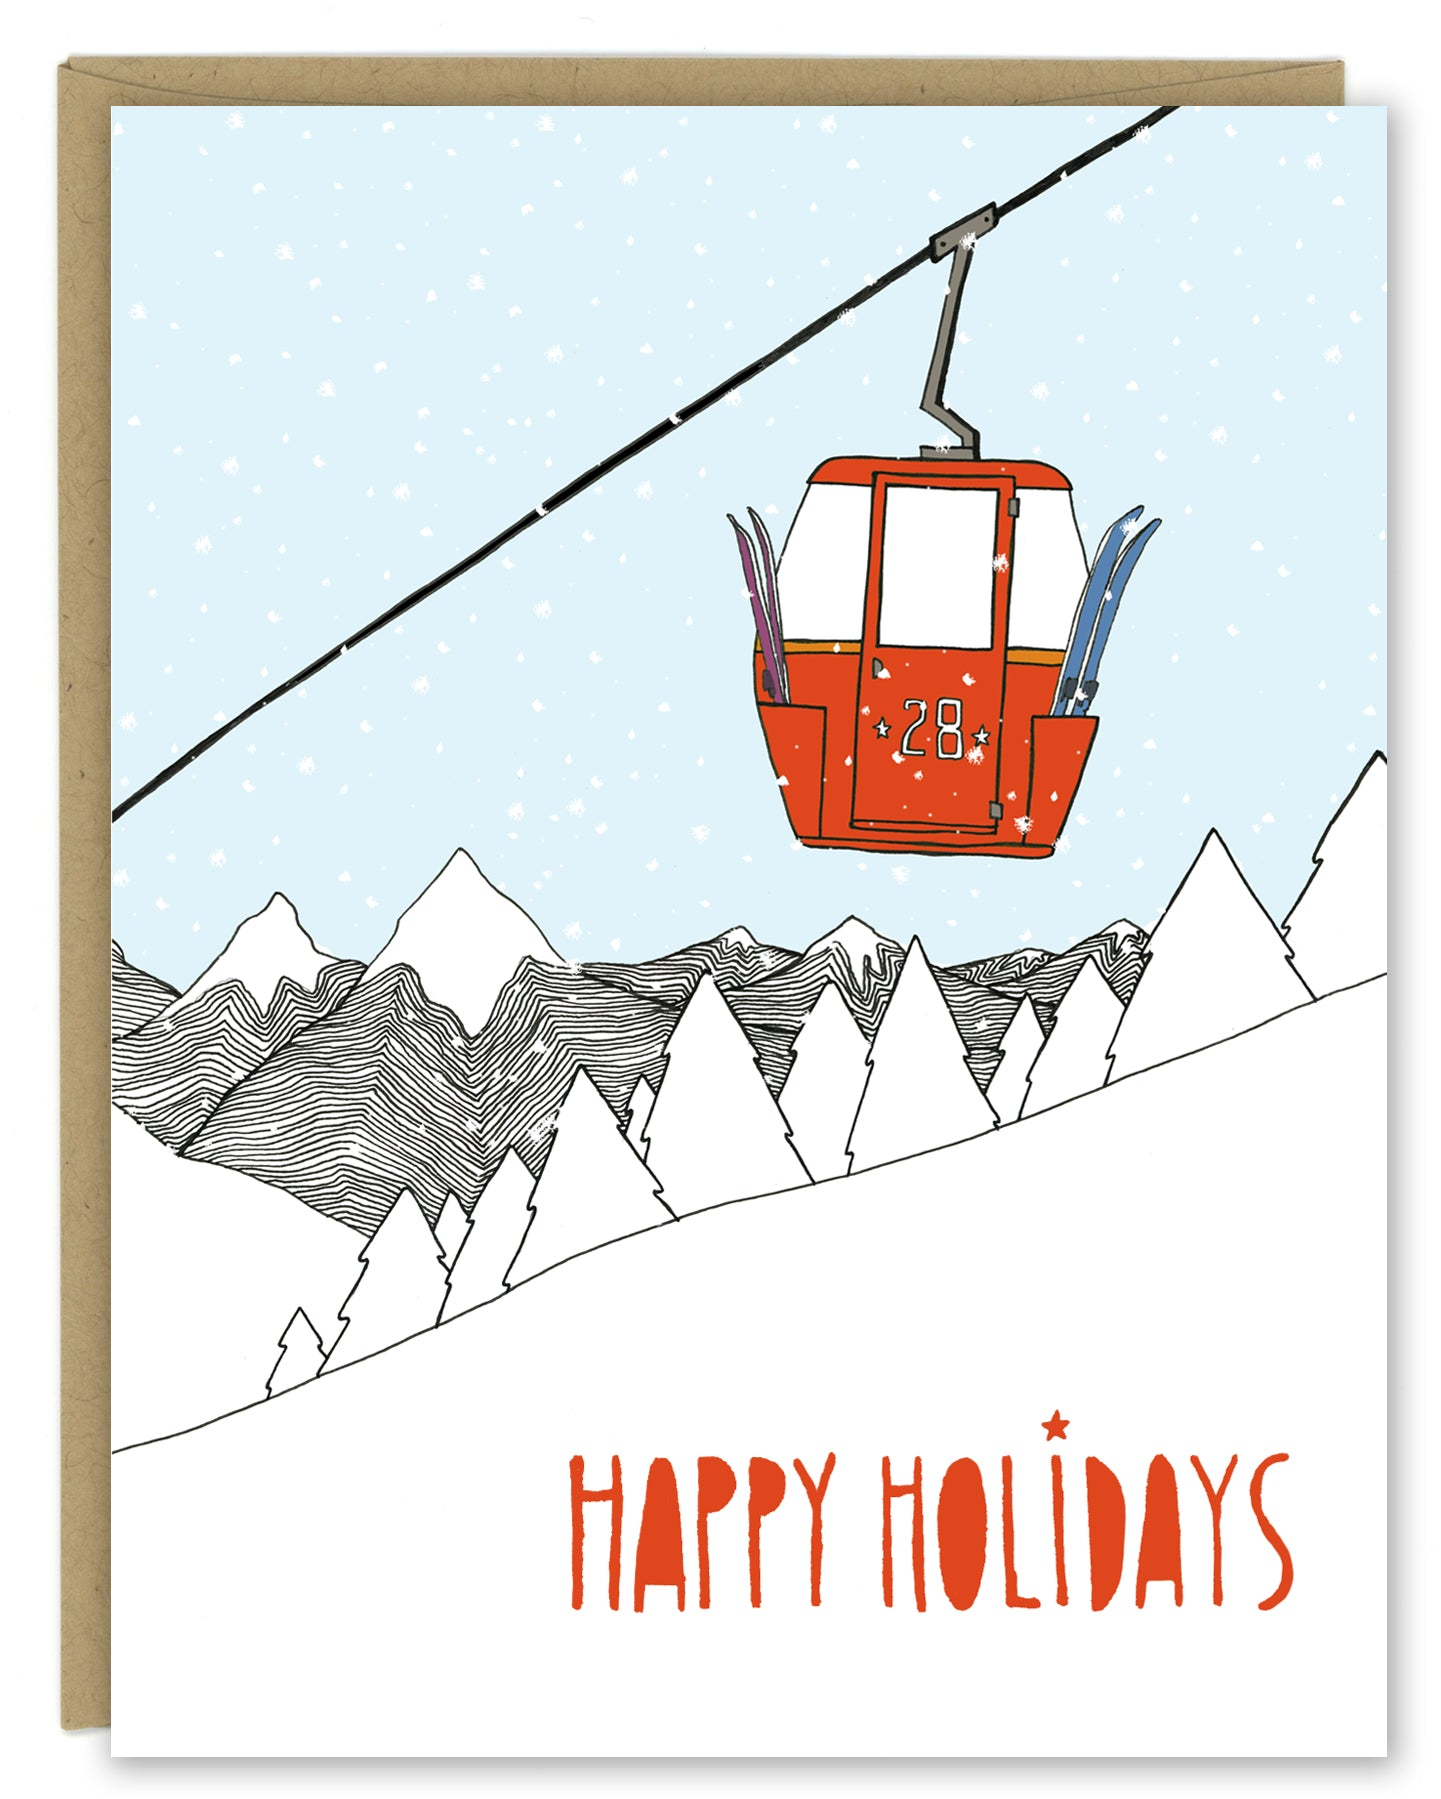 Ski Gondola Holiday Card